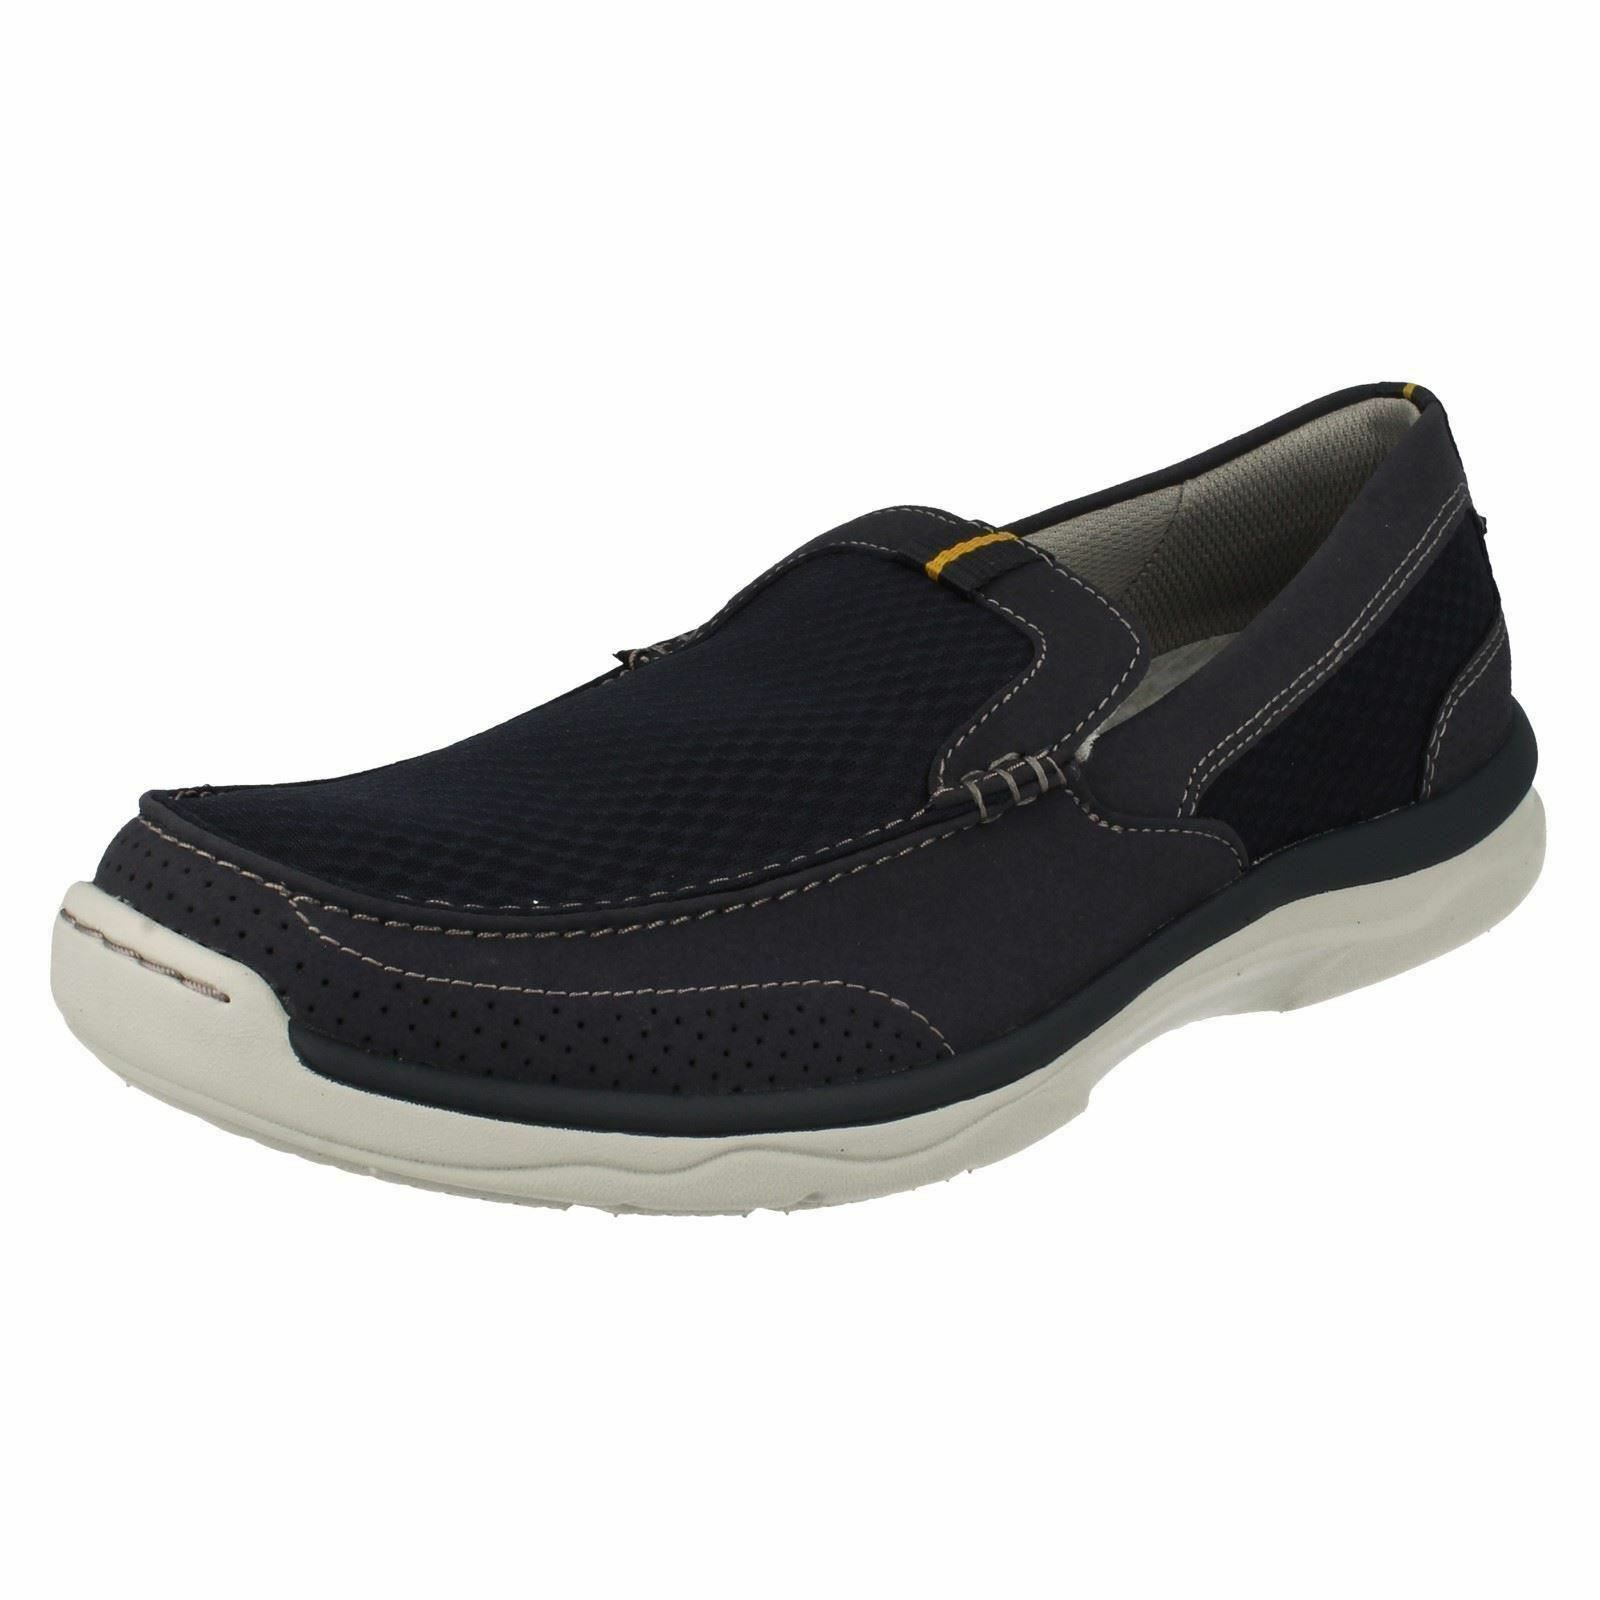 Men's/Women's MARUS MENS CLARKS NAVY SHOES MARUS Men's/Women's STEP Big clearance sale special promotion Outstanding style 53e327